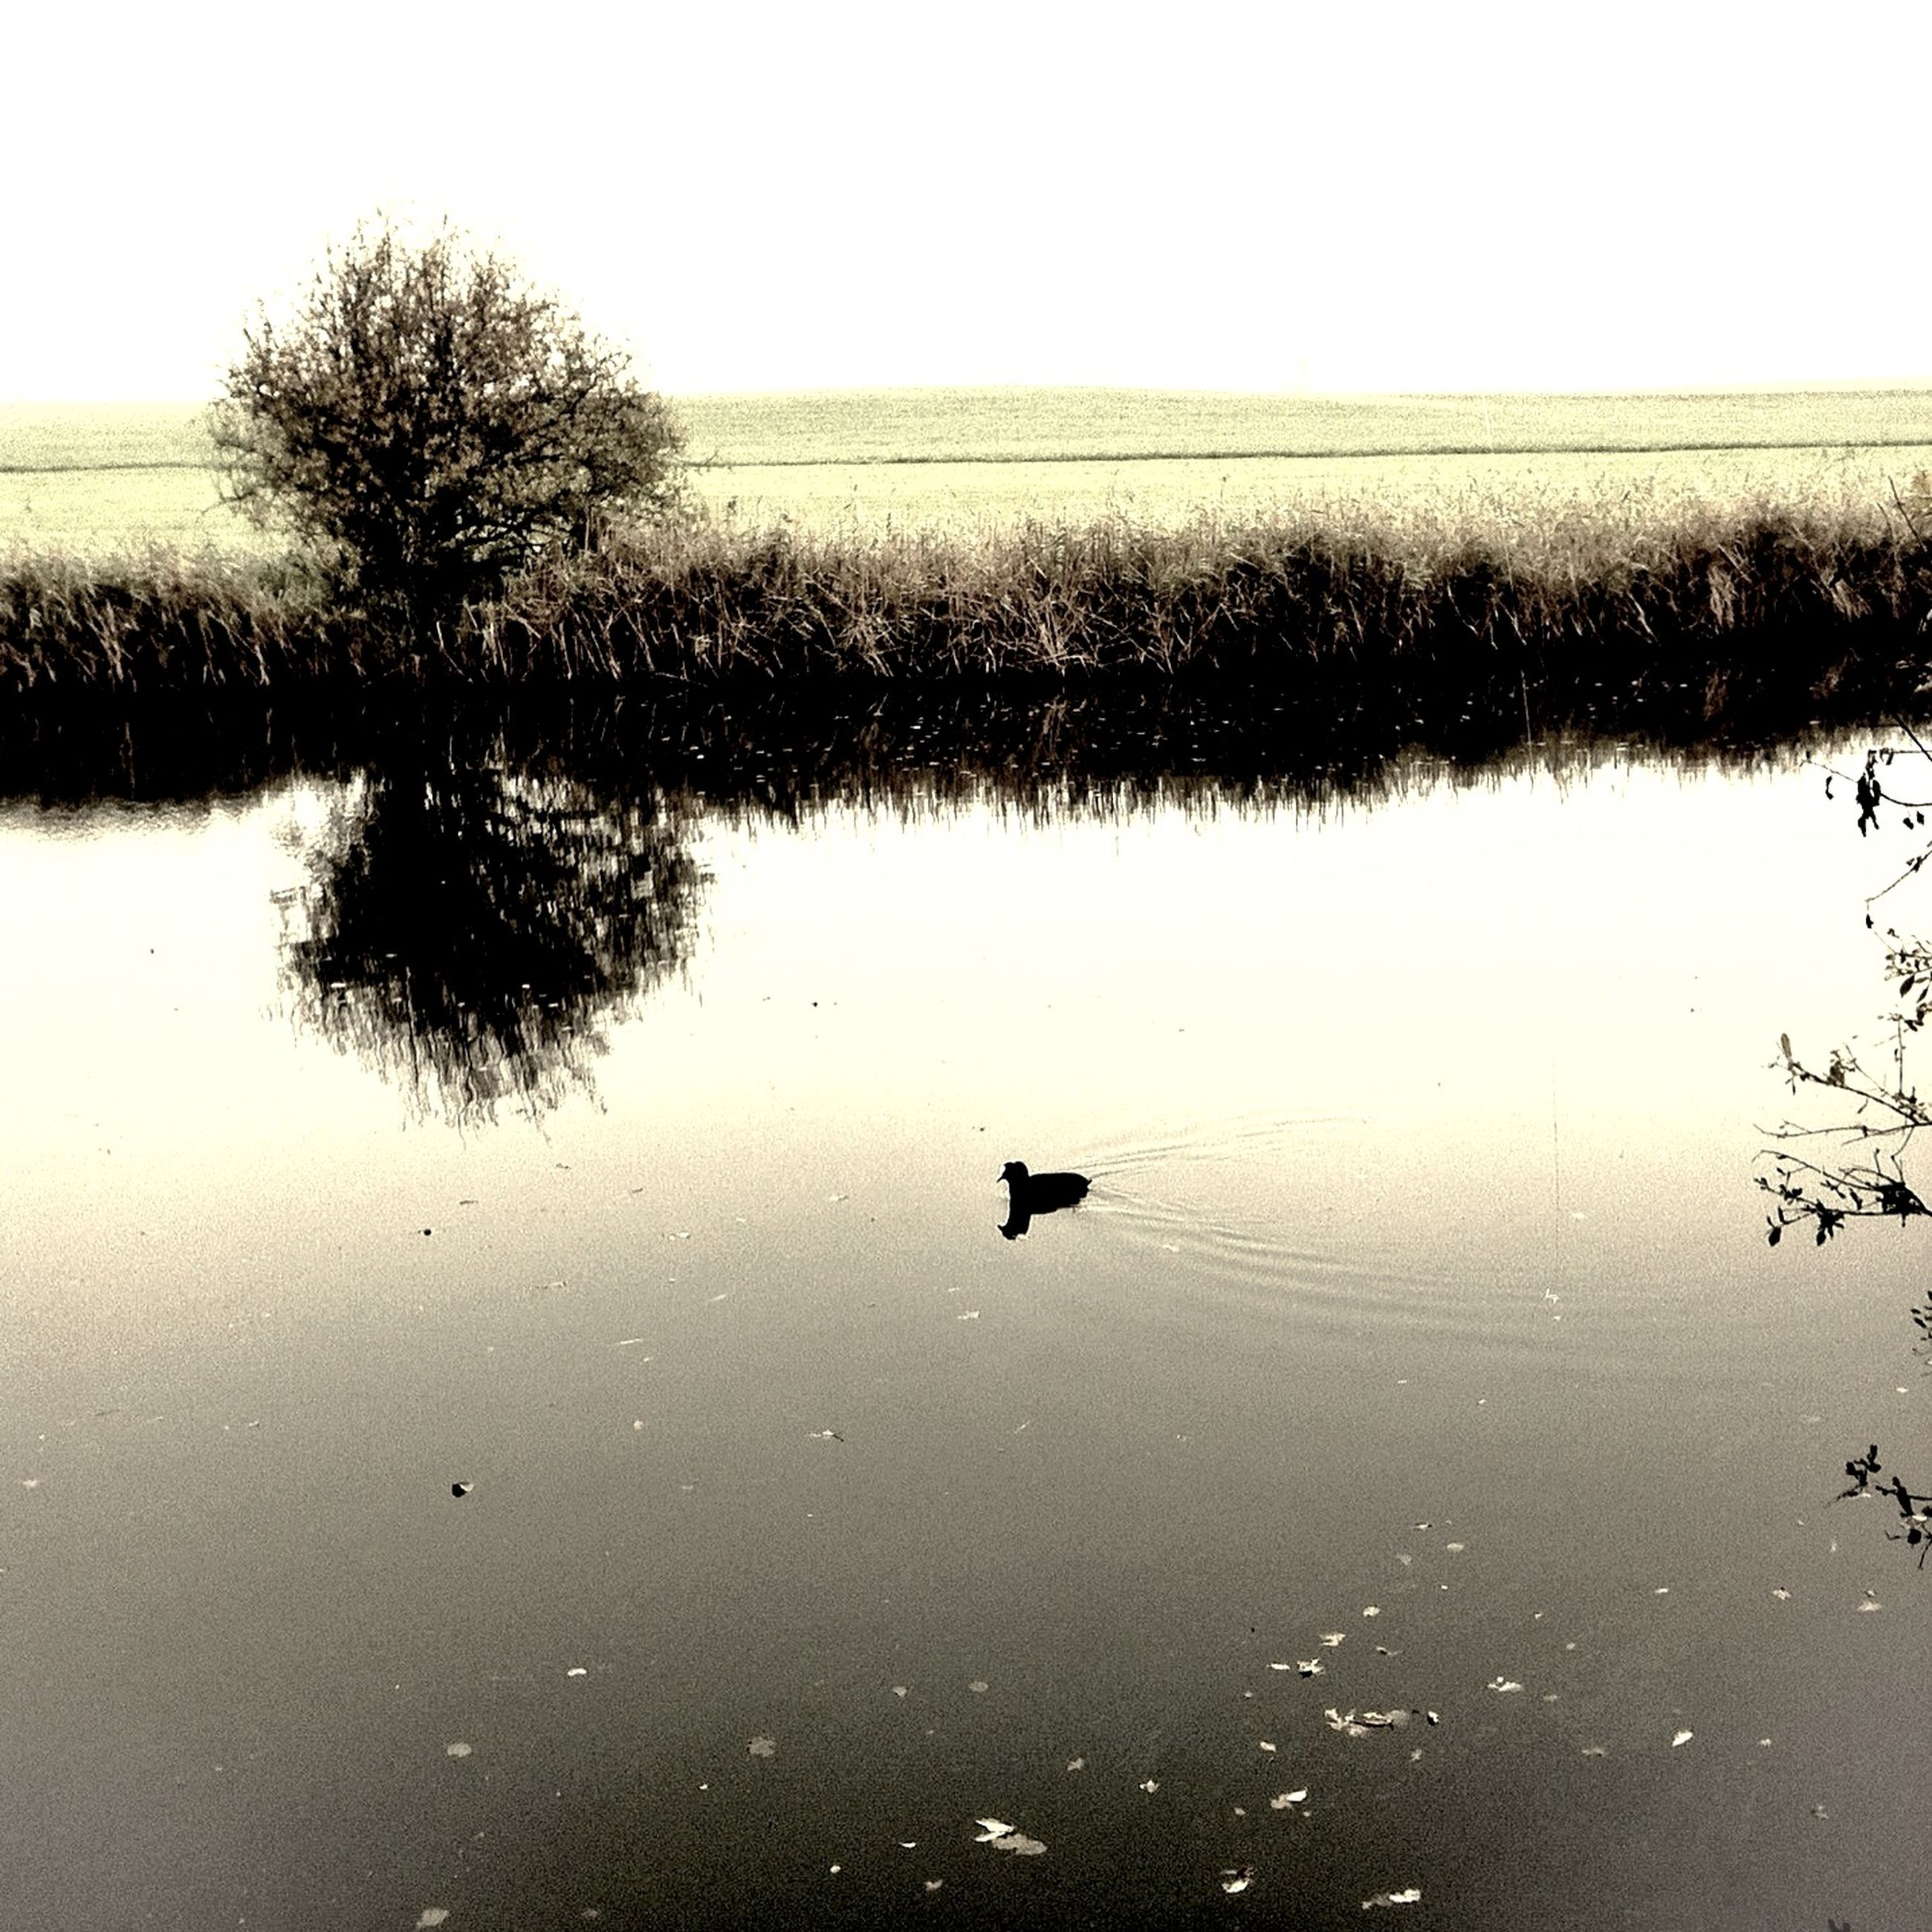 water, reflection, lake, bird, animal themes, tranquility, waterfront, tranquil scene, wildlife, one animal, animals in the wild, nature, clear sky, beauty in nature, scenics, tree, sky, flying, duck, standing water